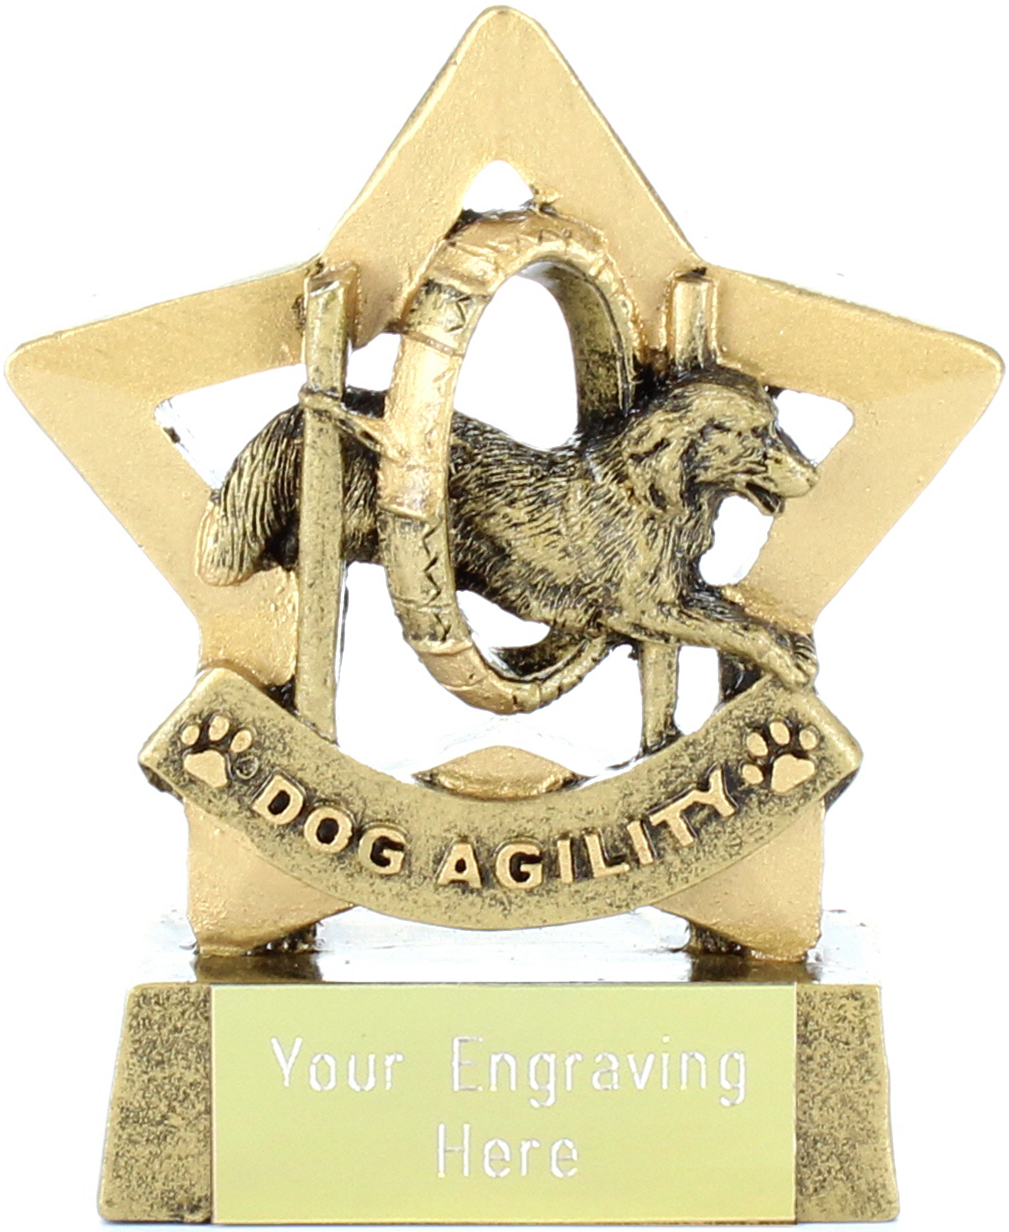 "Antique Gold Resin Mini Star Dog Agility Trophy 8.5cm (3.25"")"